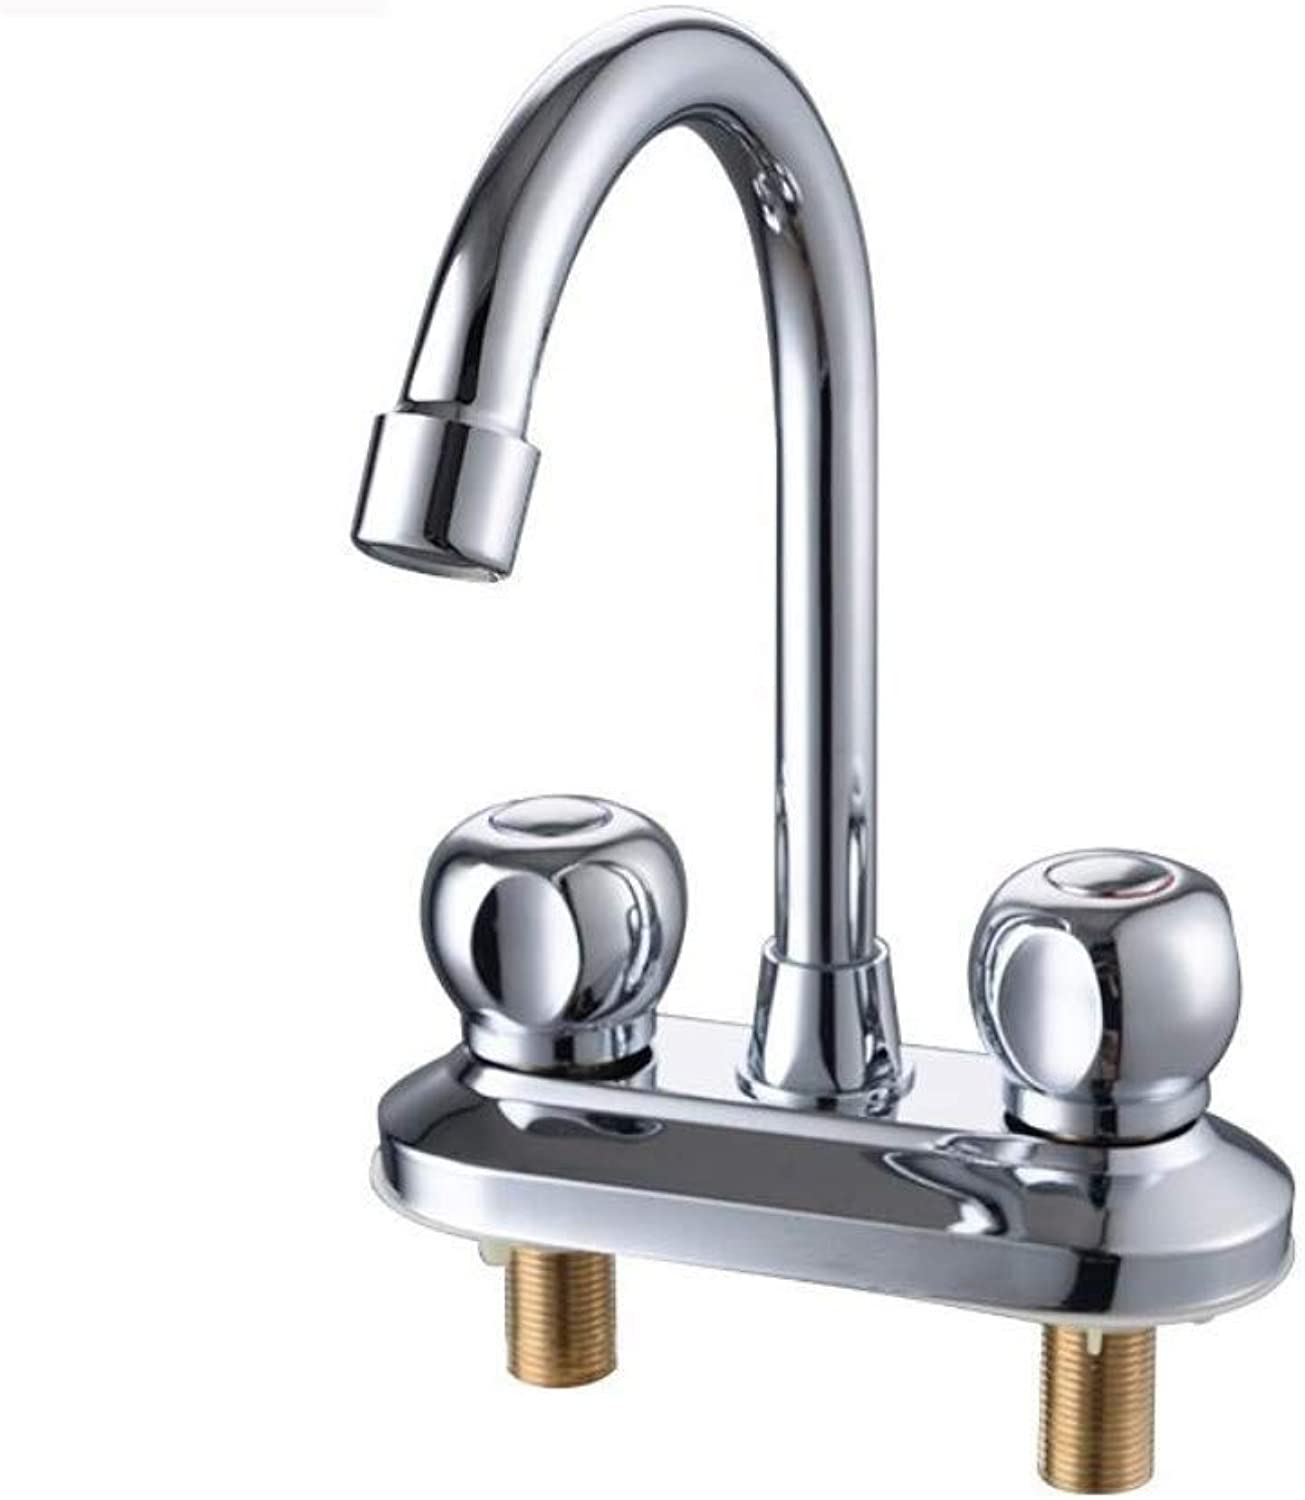 Water Tap Washbasin Double Bathroom Double Hole Hot and Cold Water Faucet Hand Wash Basin Three Hole Faucet Home Vintage Kitchen